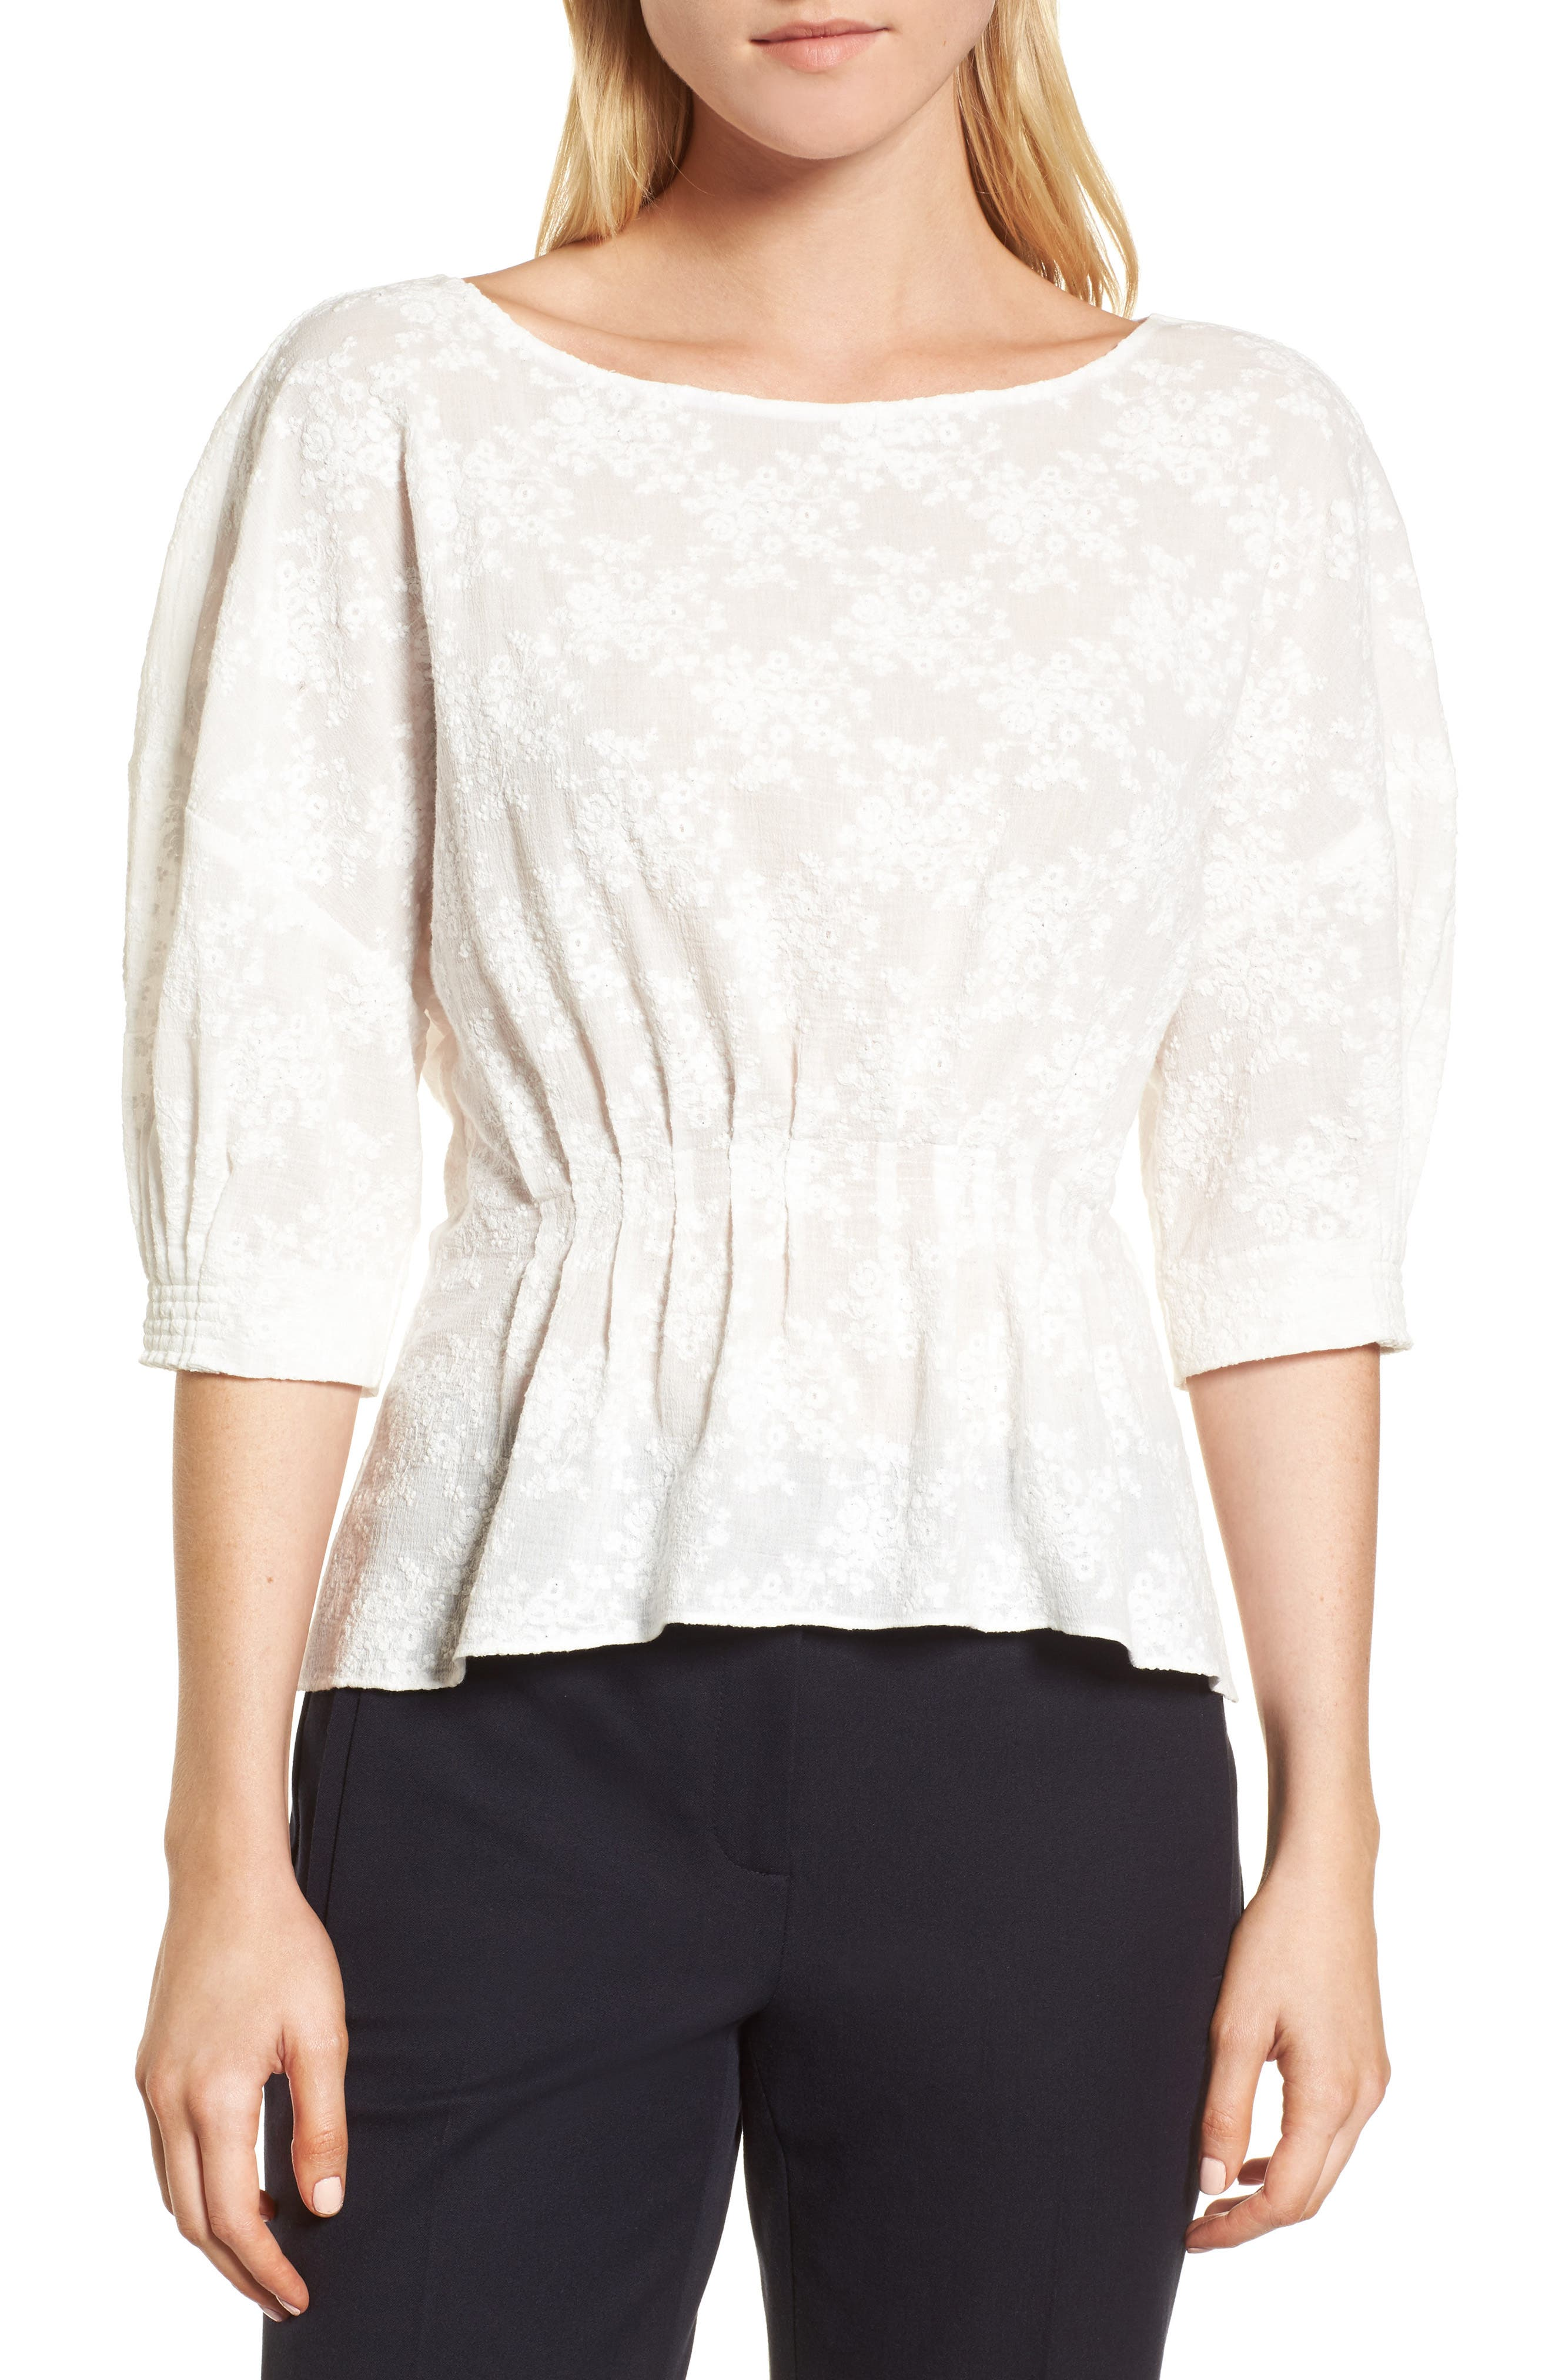 NORDSTROM SIGNATURE, Embroidered Tucked Top, Main thumbnail 1, color, 100